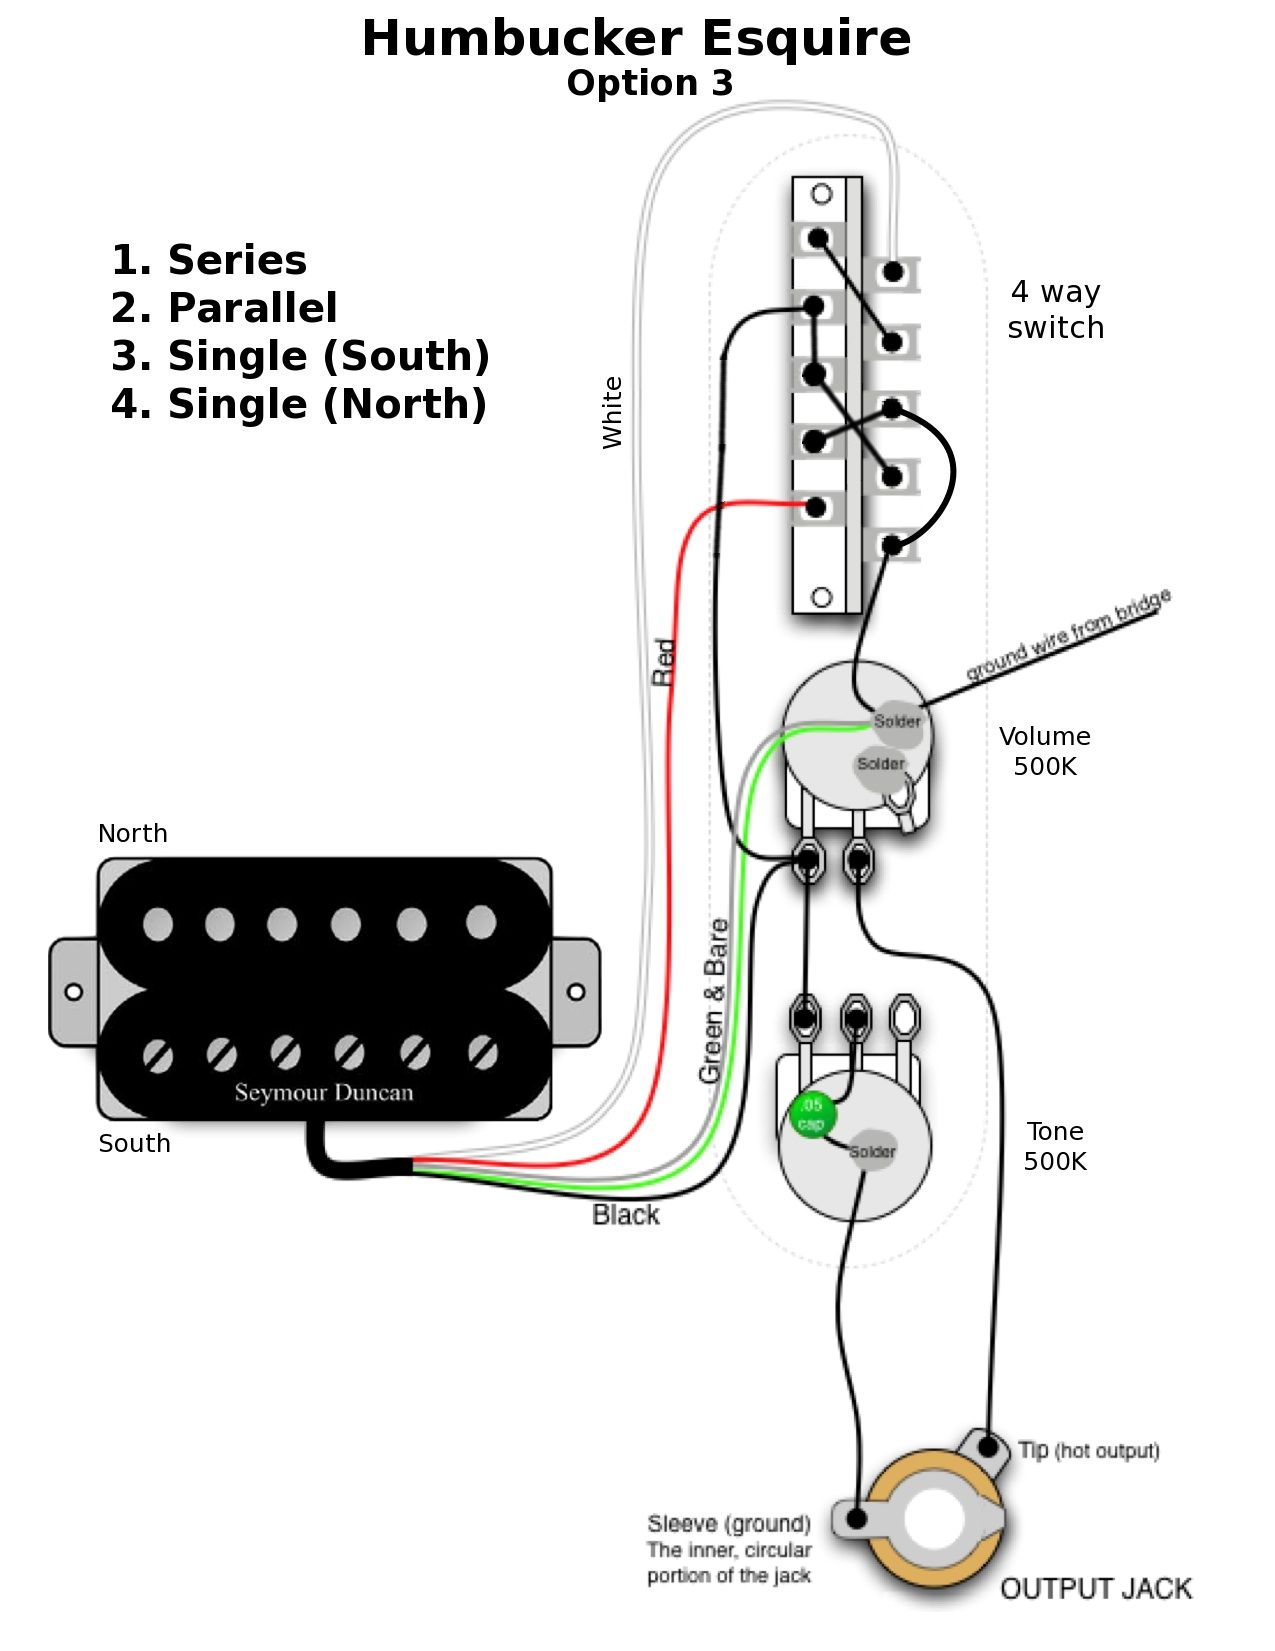 Motherbucker Wiring Diagram Will Be A Thing Kent Armstrong Pickup Neck Esquire Humbucker 32 Pickups Mighty Mite